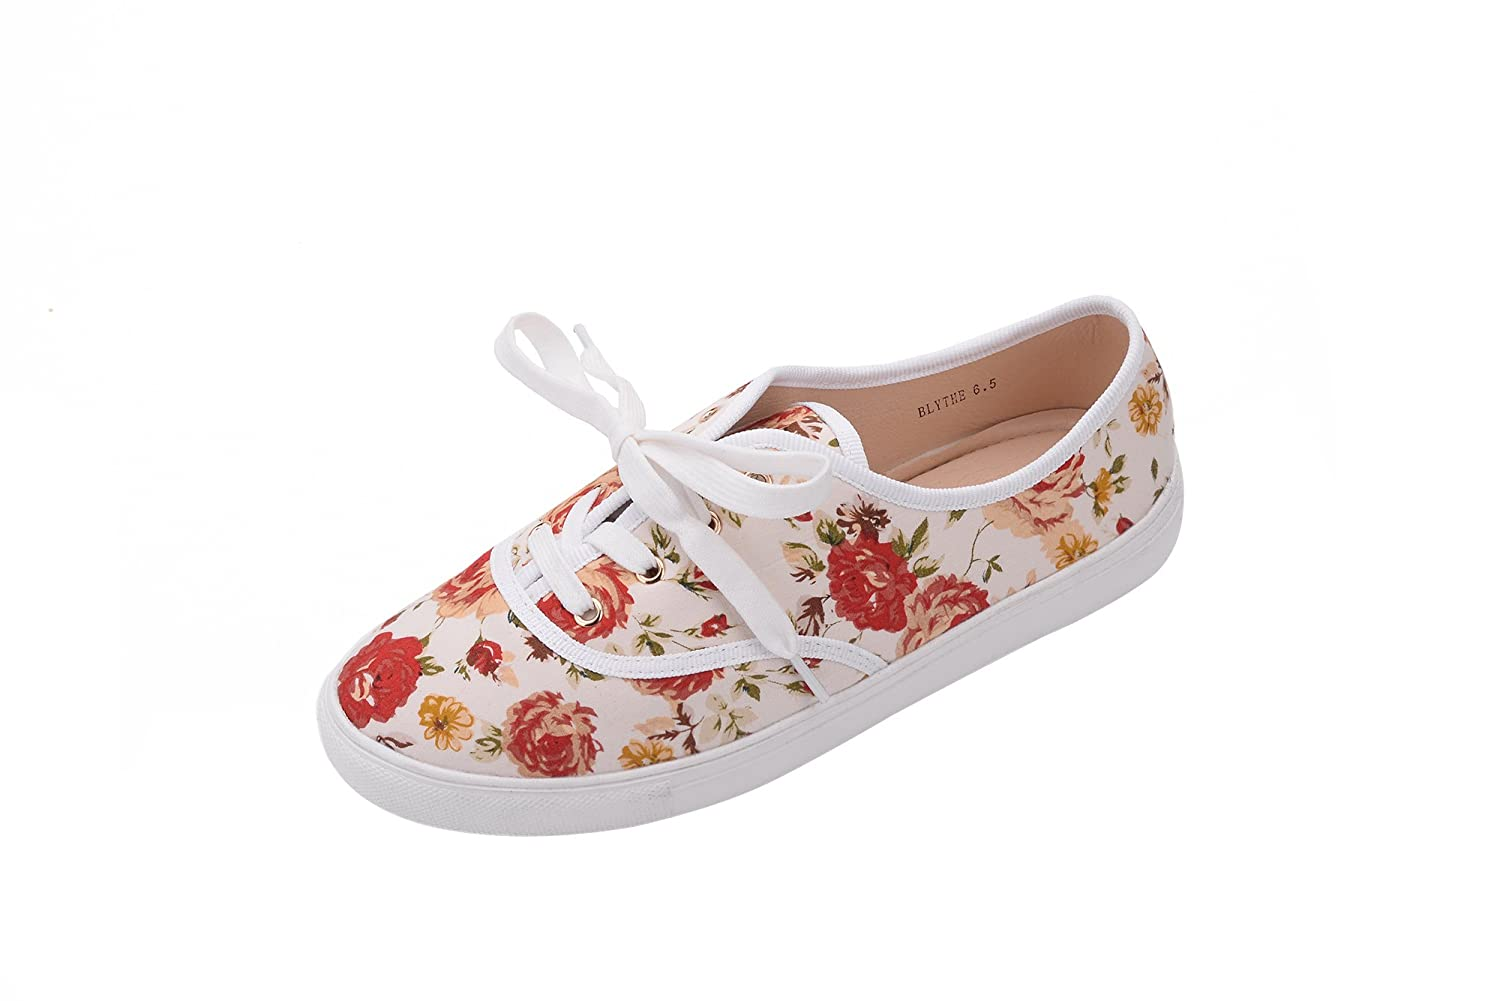 51c4b82bf8c61 GREENS (BLYTHEE Women Canvas Floral Lace up Flat Sneaker FL/White 8